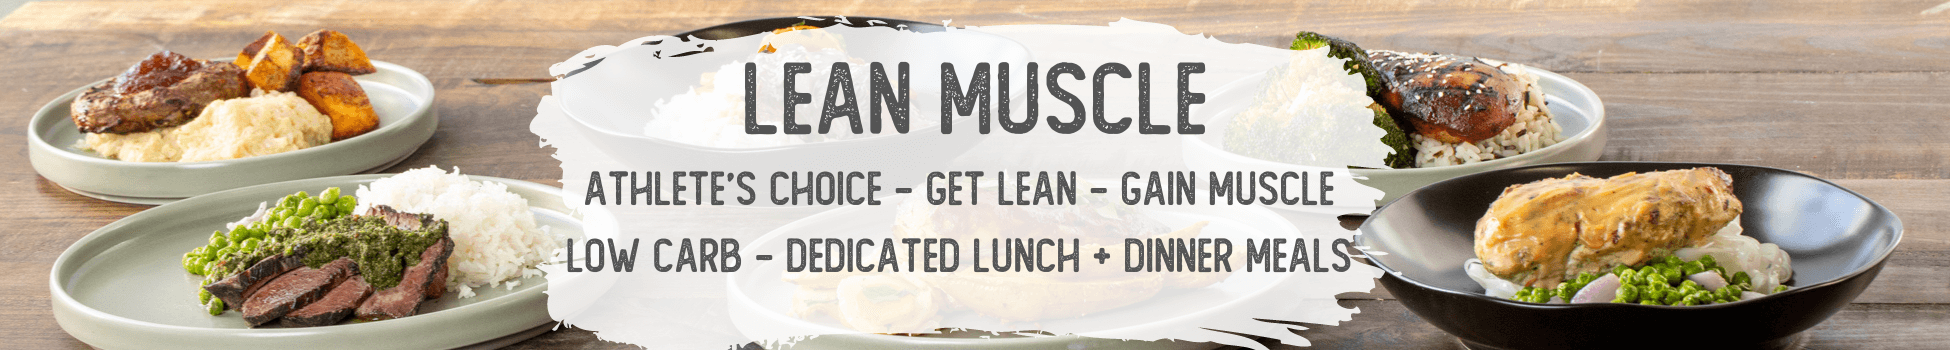 Lean Muscle Meal Box